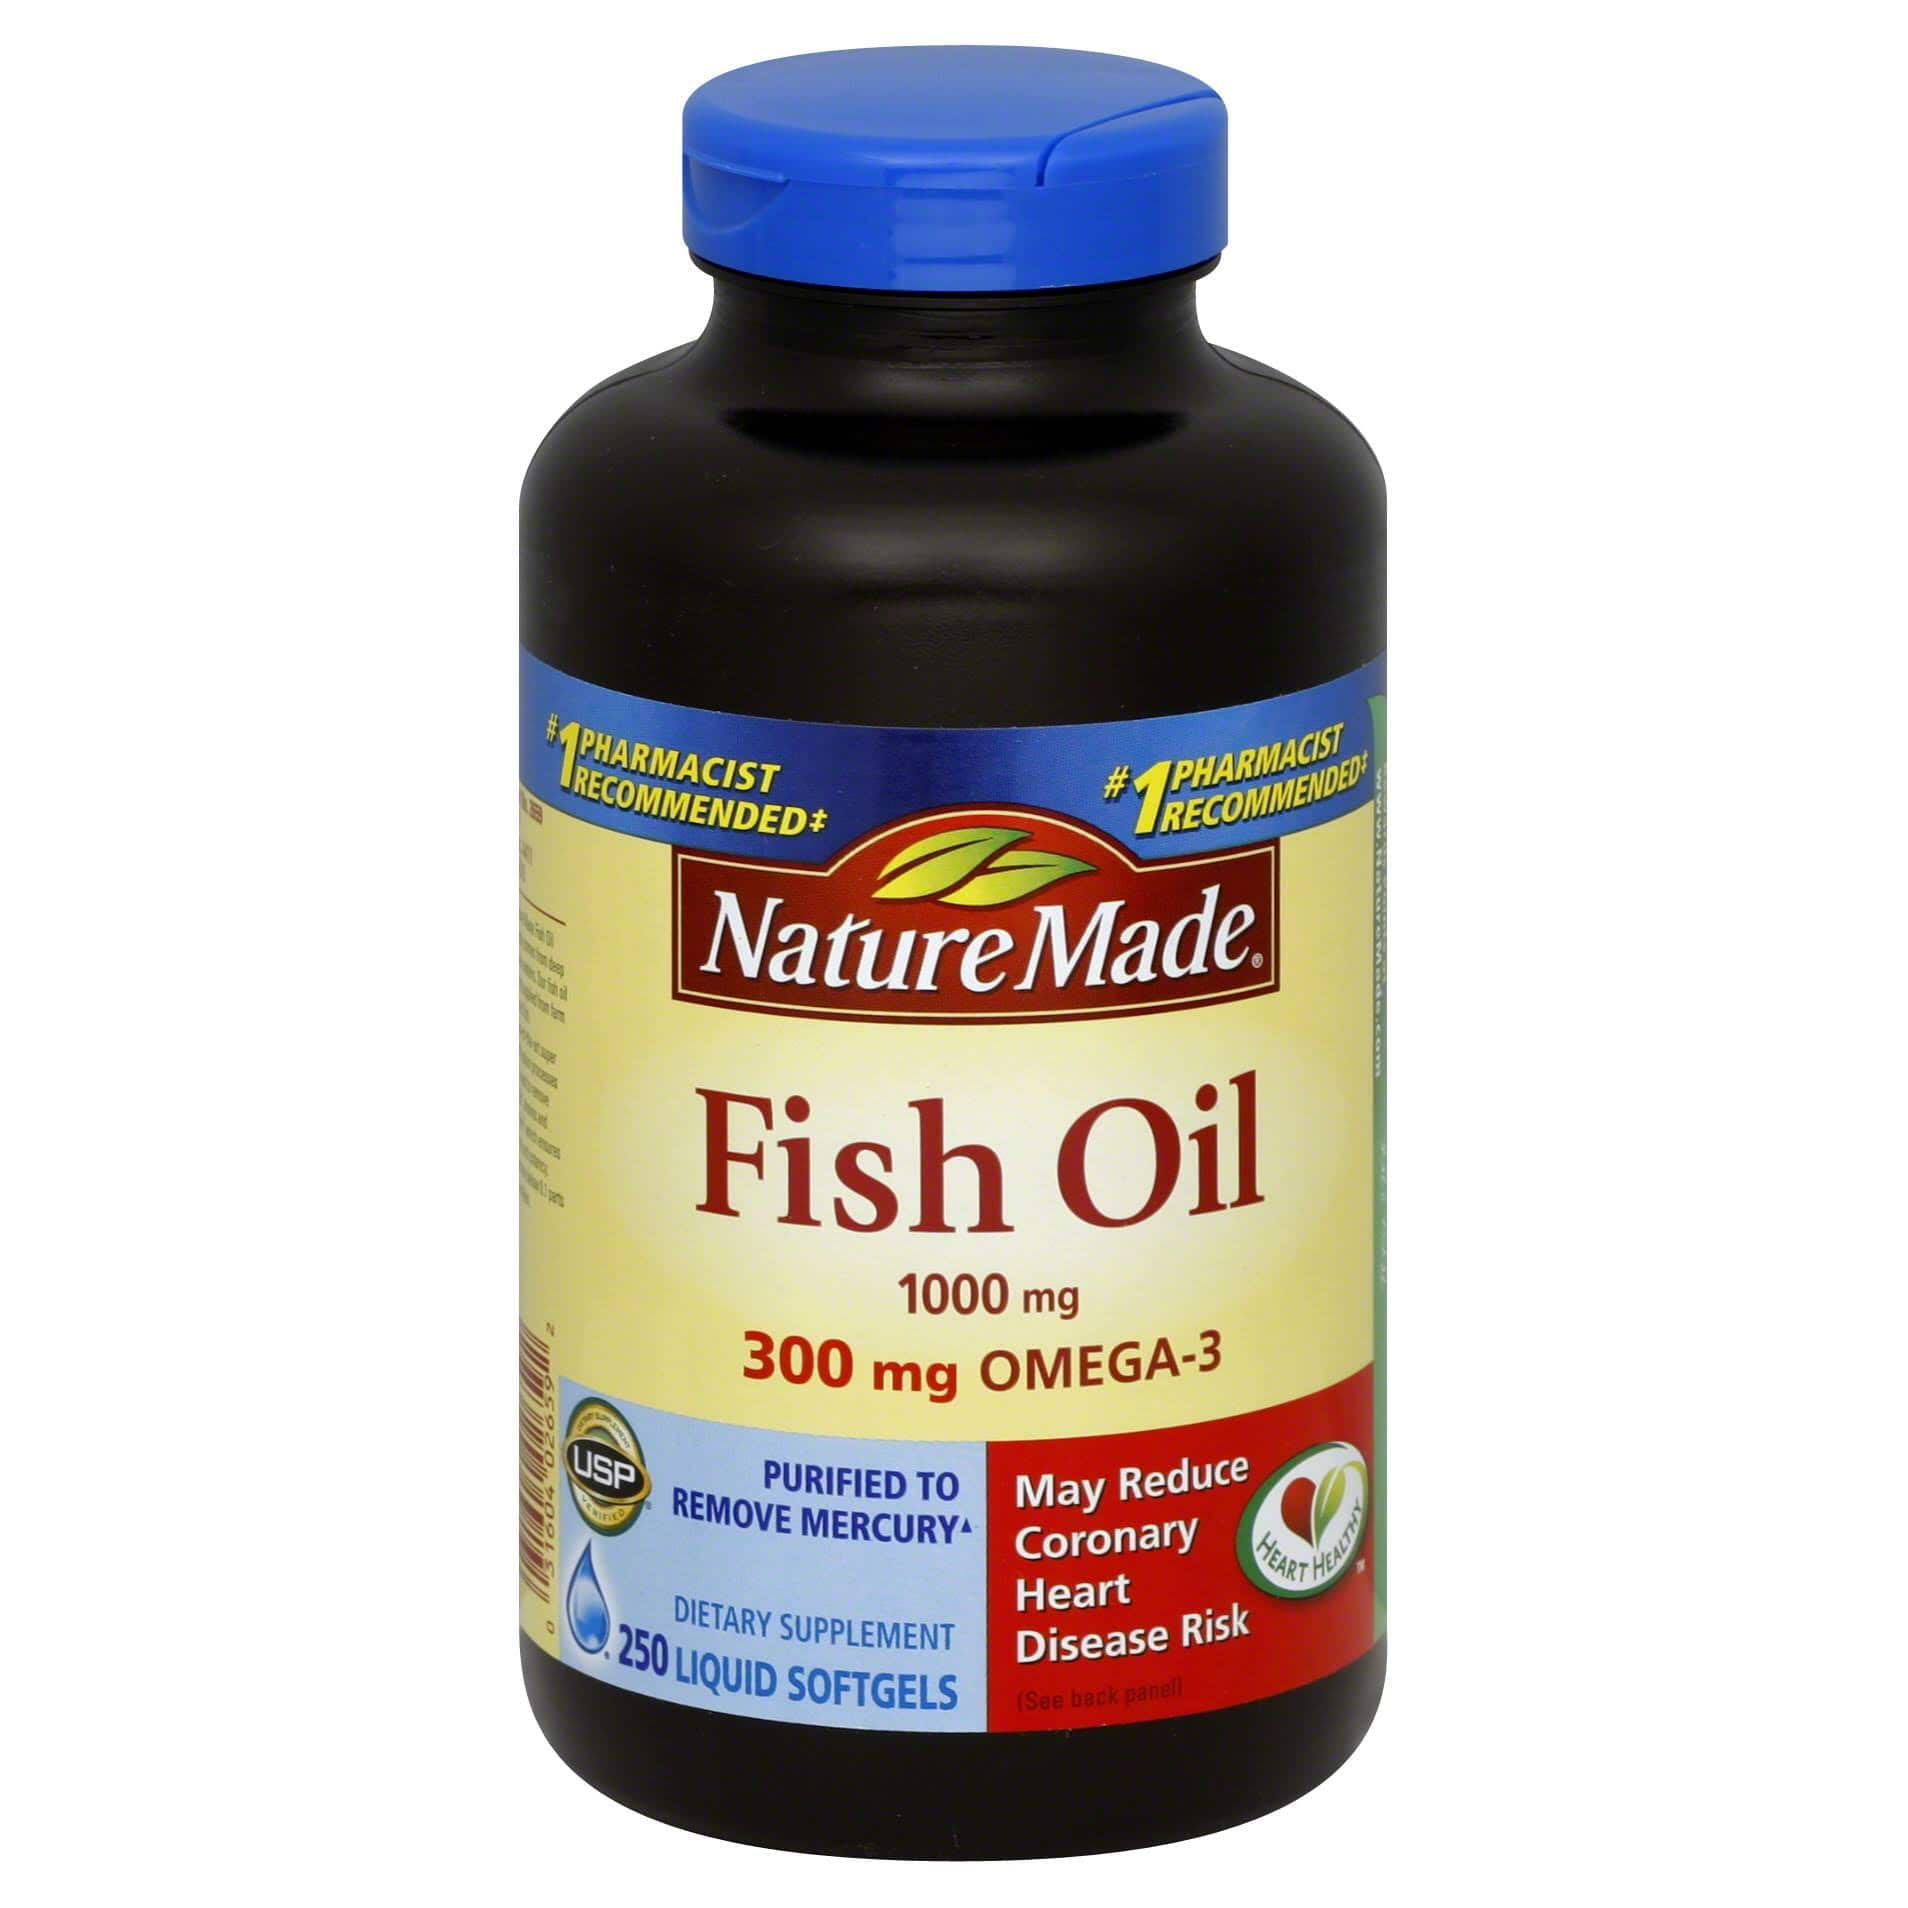 250-Count Nature Made 1000mg Fish Oil Softgels $8.79 w/ Subscribe & Save + Free Shipping w/ Prime or $25+